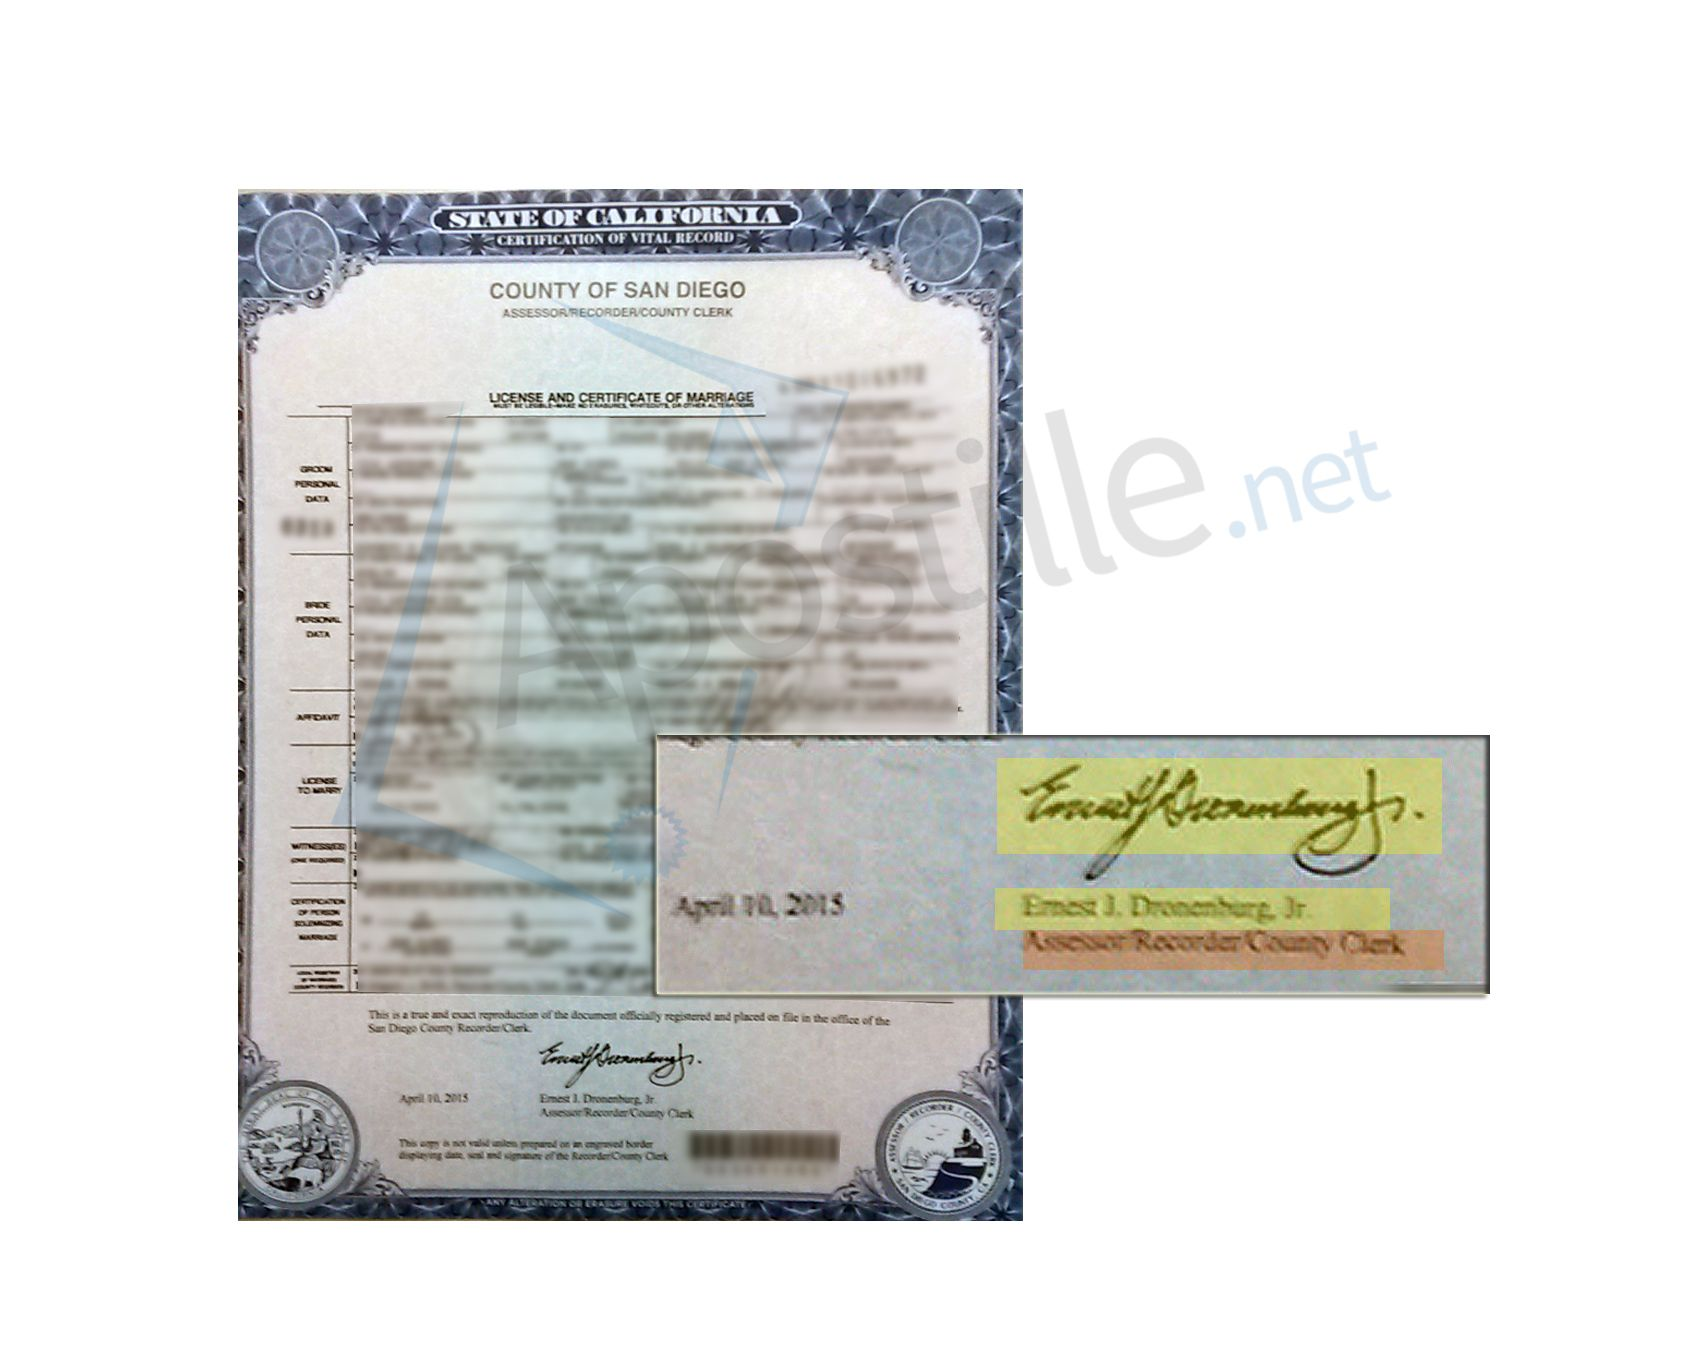 County Of San Diego License And Certificate Of Marriage Signed By